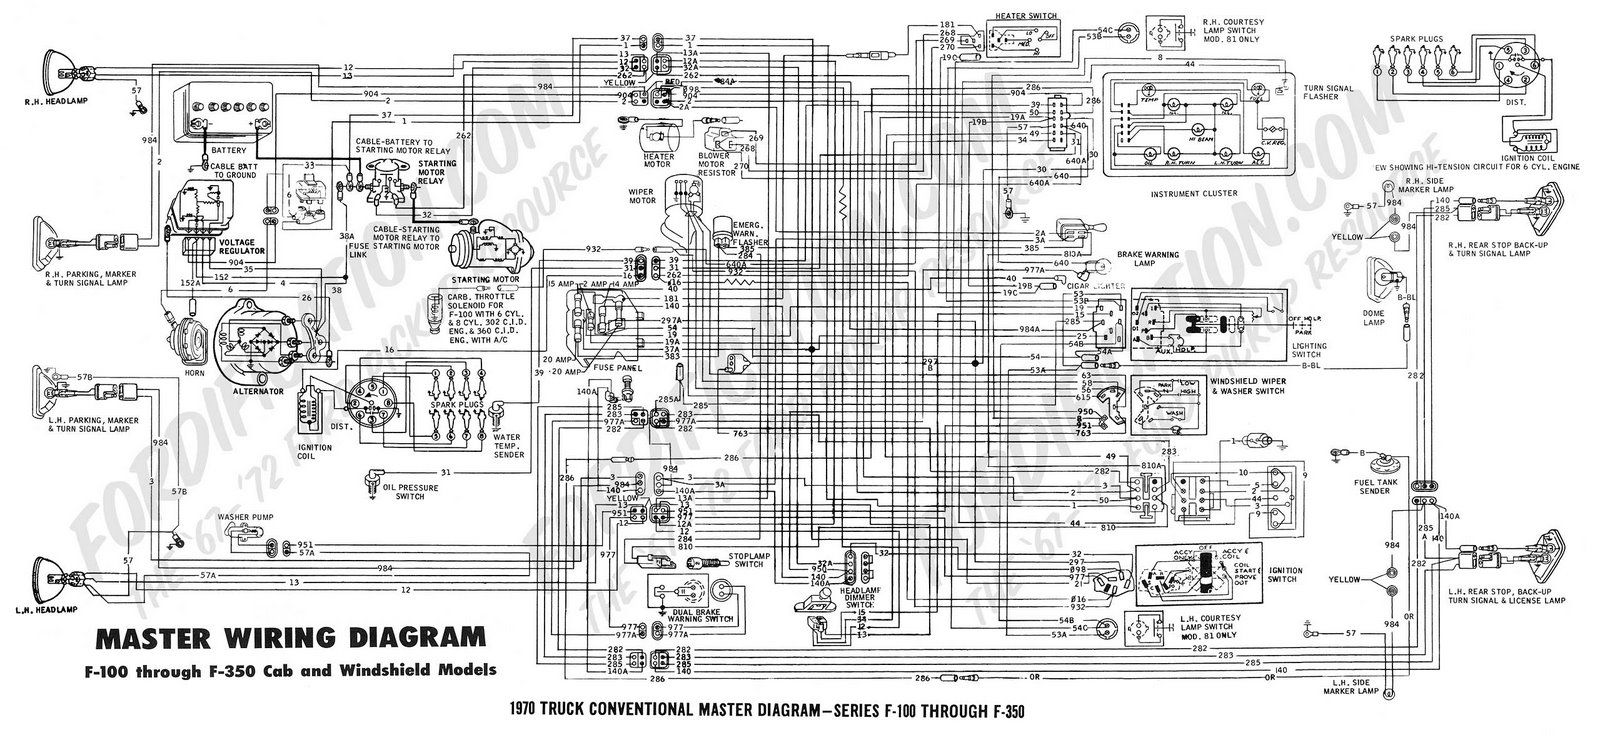 Pin By Hauke On Electrica Automotriz Diagram Repair Manuals Ford